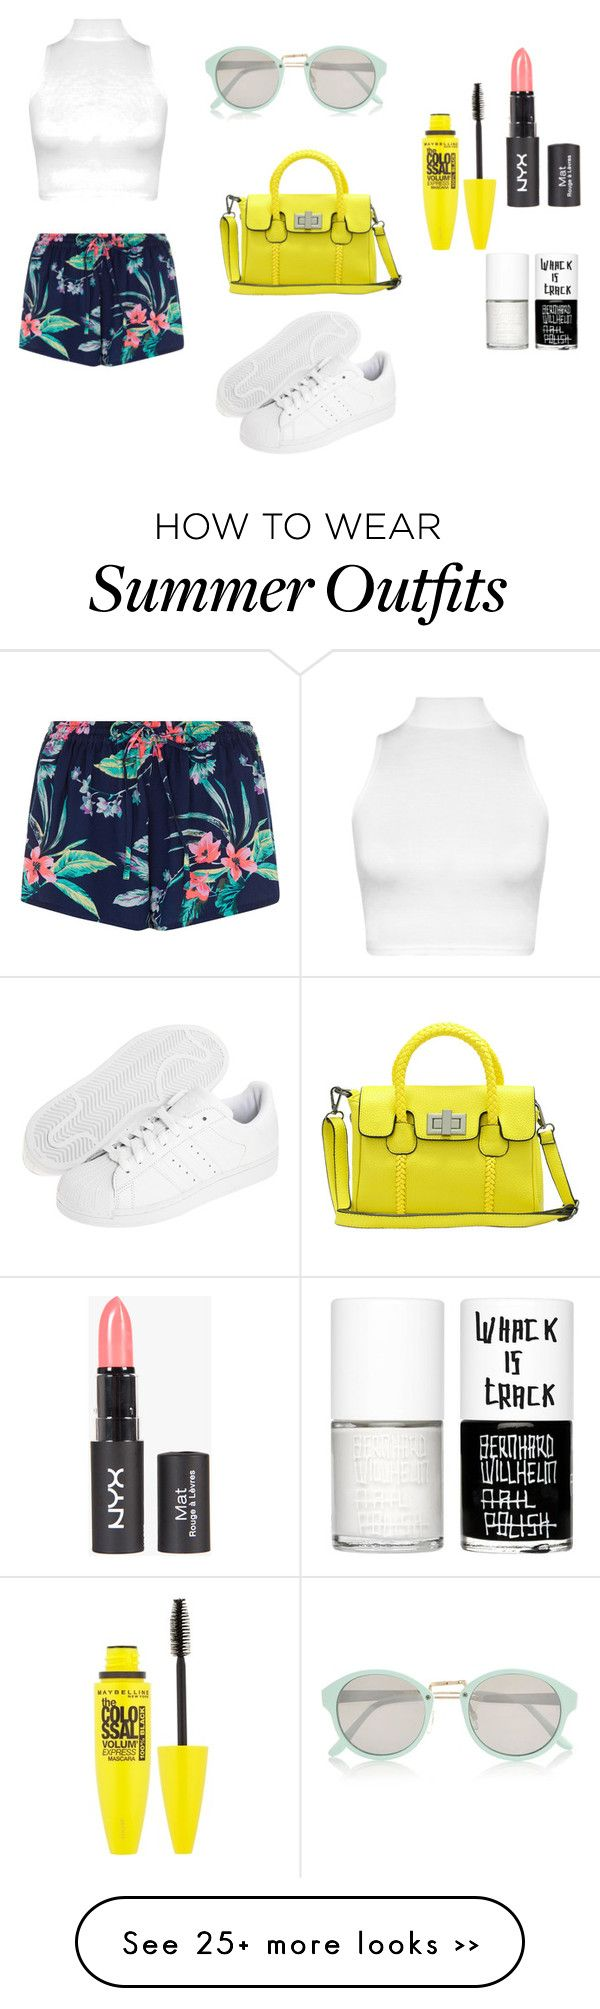 """""""Summer Outfit"""" by antonia053 on Polyvore"""